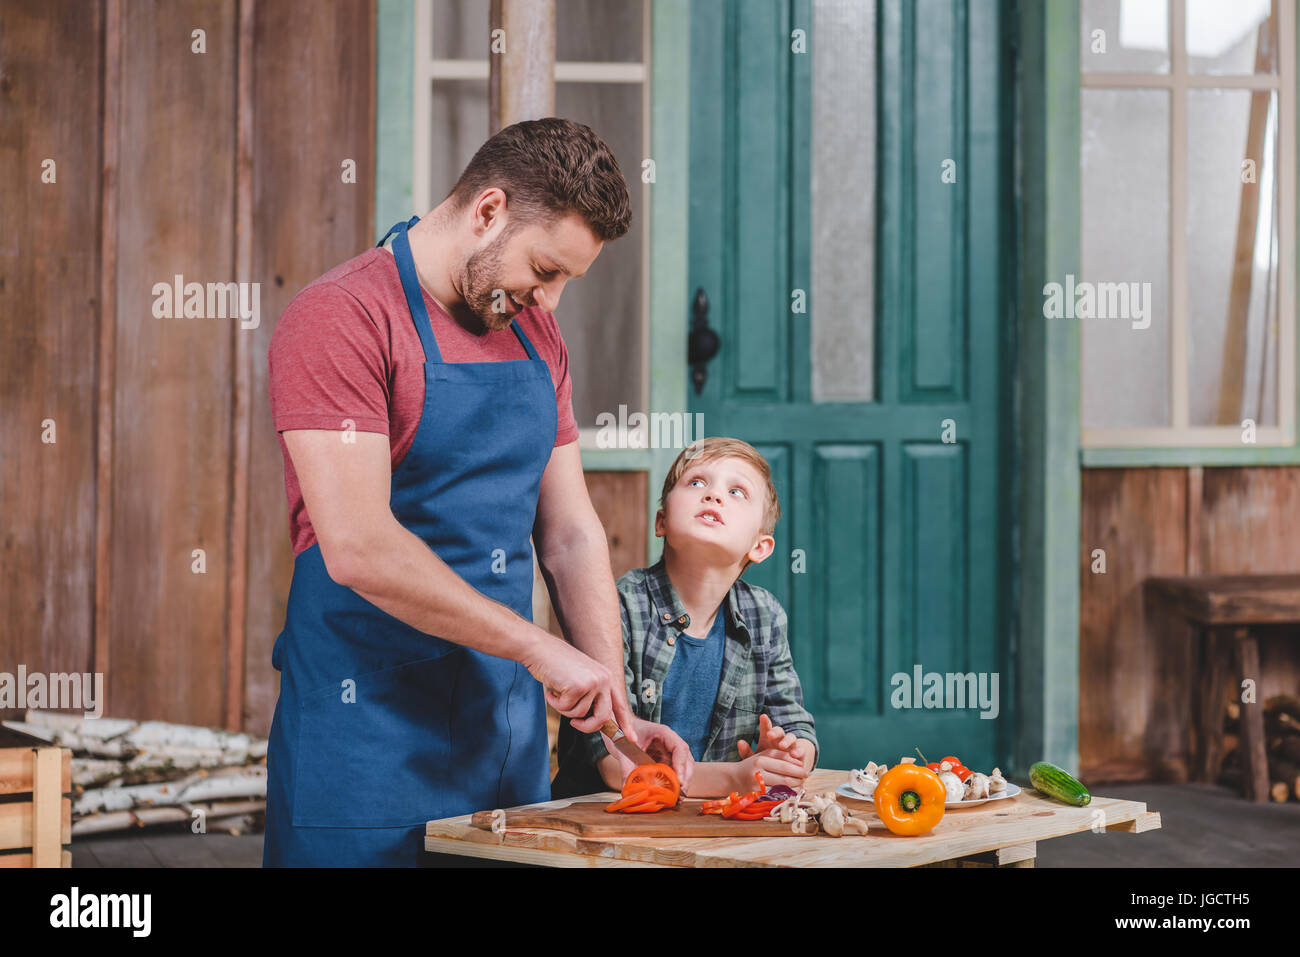 Smiling father and son cutting fresh vegetables at backyard, dad and son cooking concept - Stock Image